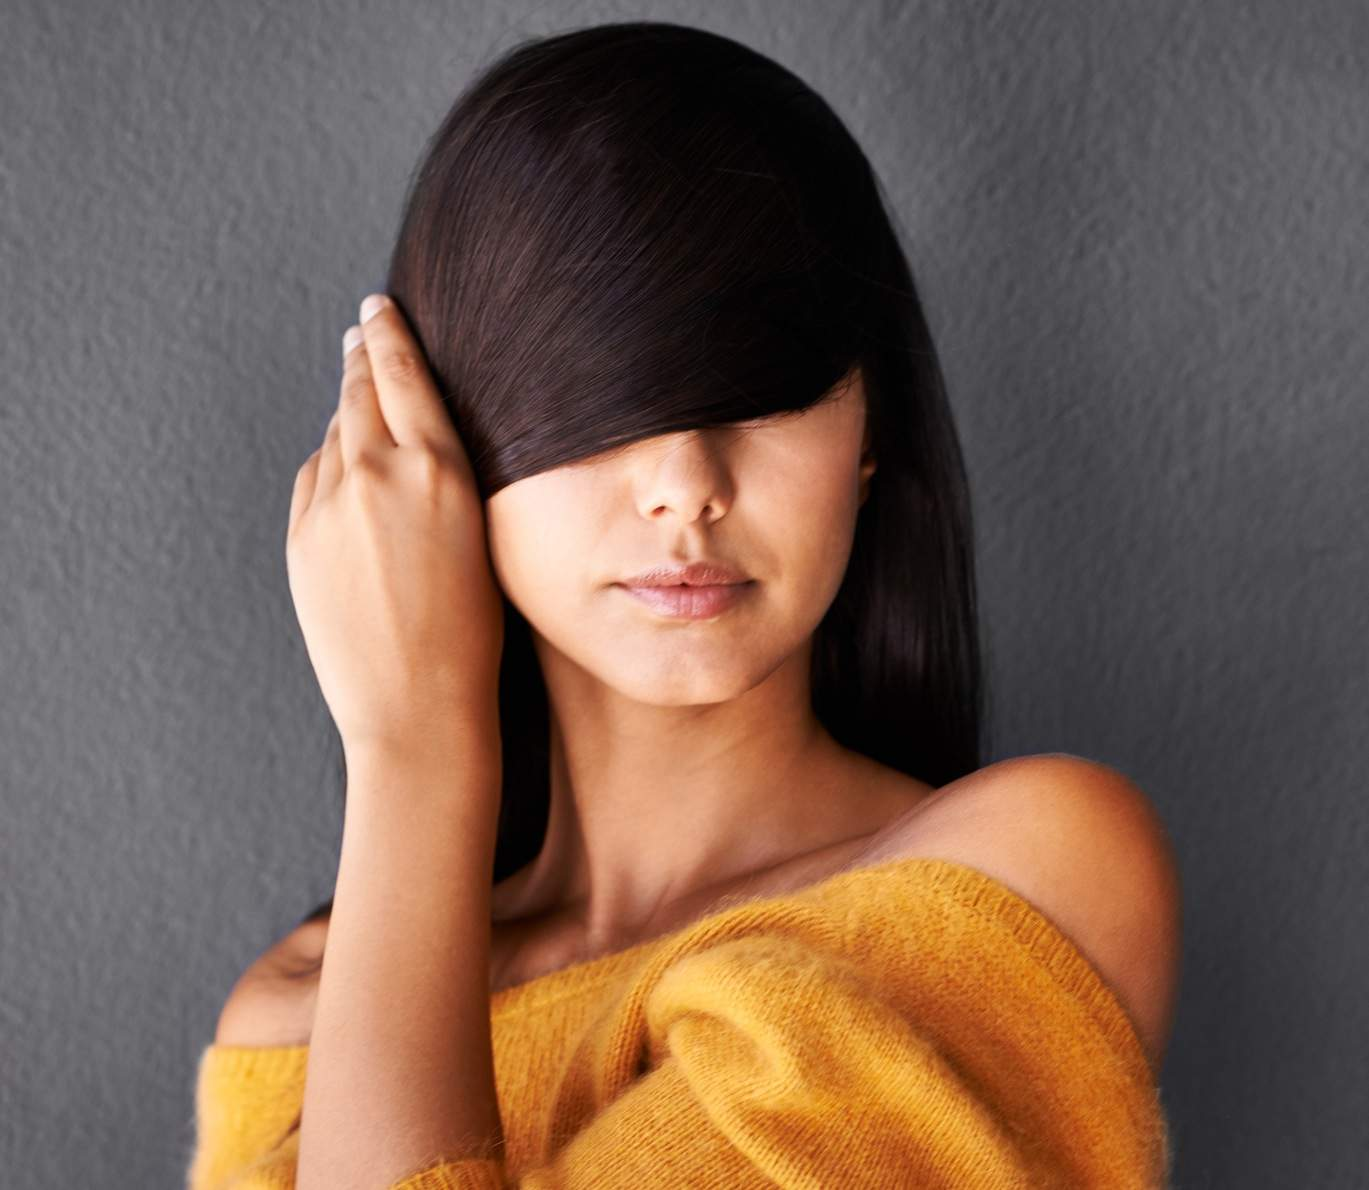 Closeup shot of an attractive young woman covering her eyes with her hairhttp://195.154.178.81/DATA/i_collage/pi/shoots/783562.jpg